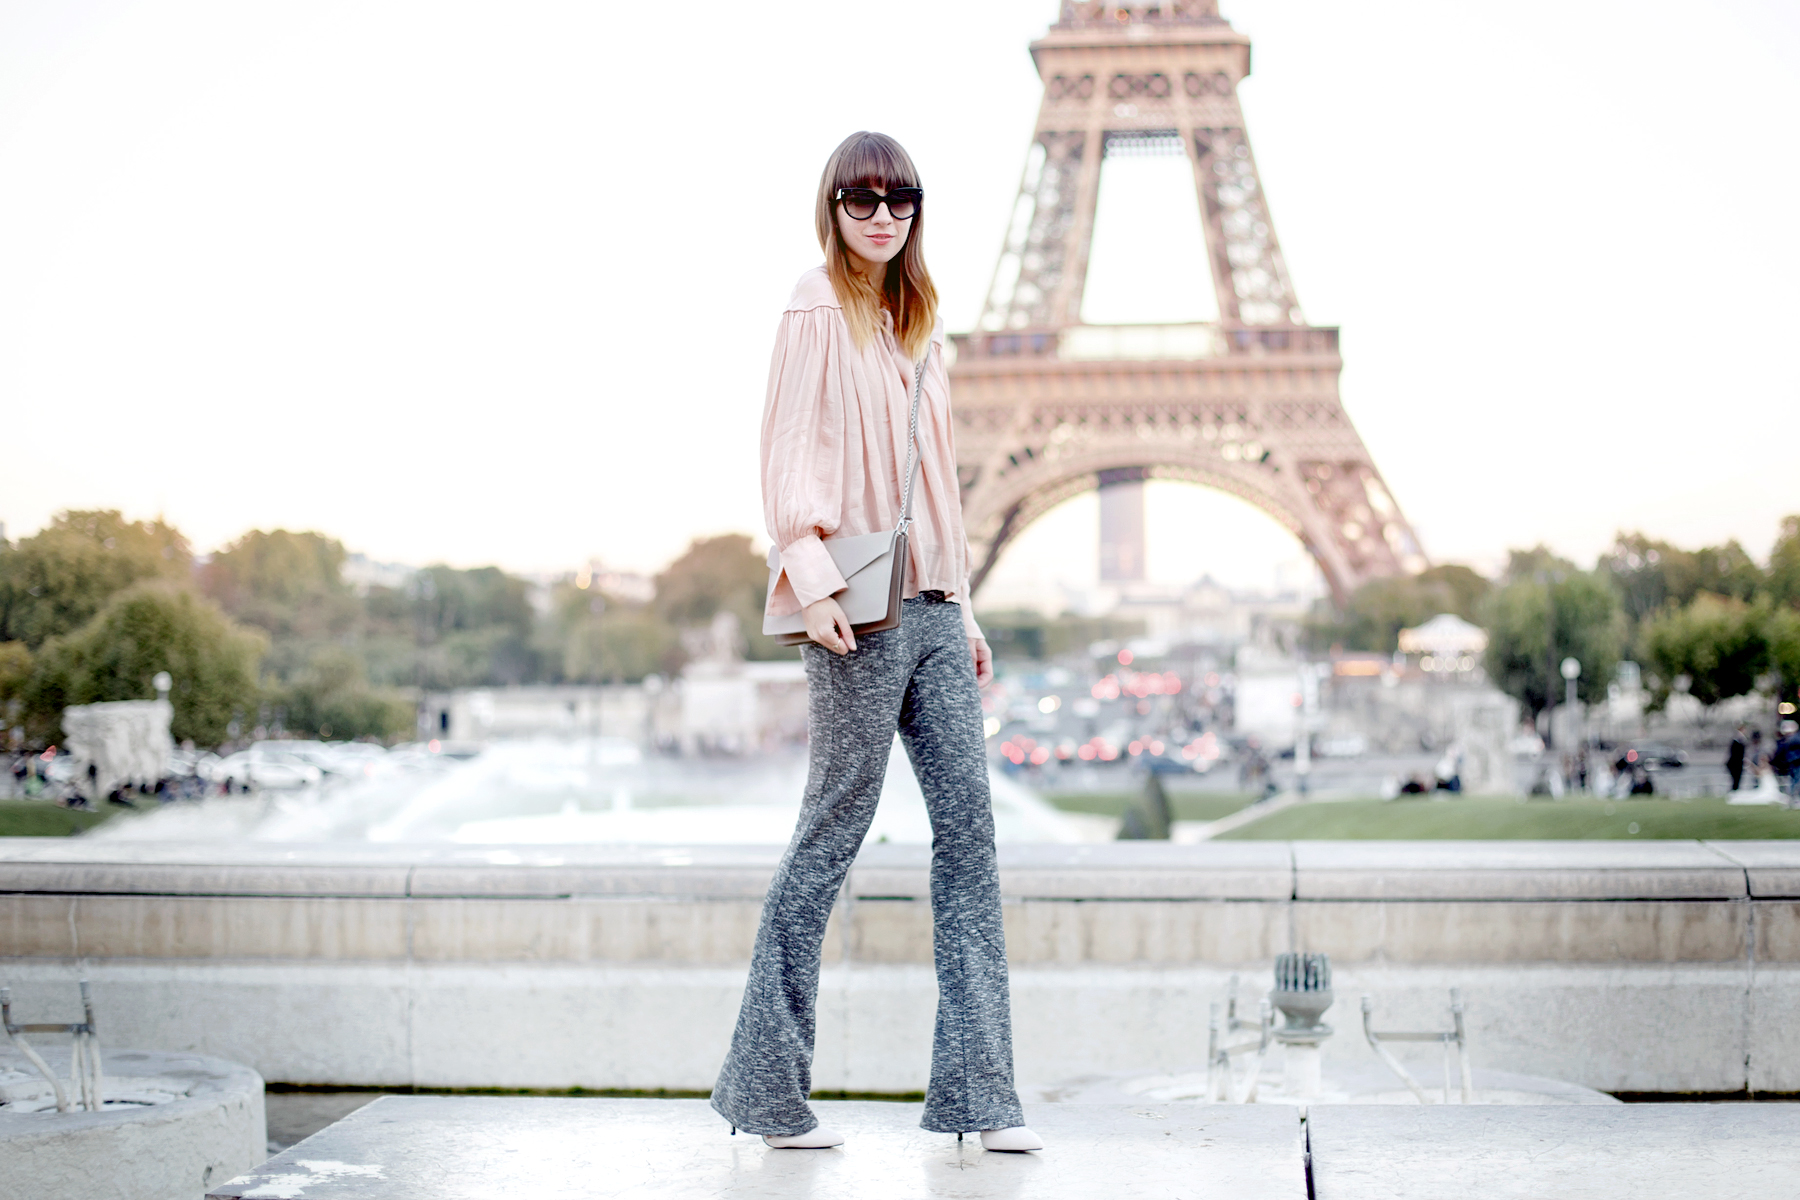 tour eiffel paris pfw fashionweek lancaster paris element bag peach bright outfit ootd look lookbook travel travelblogger inspiration autumn france french fashion blogger cats & dogs fashionblog ricarda schernus 4